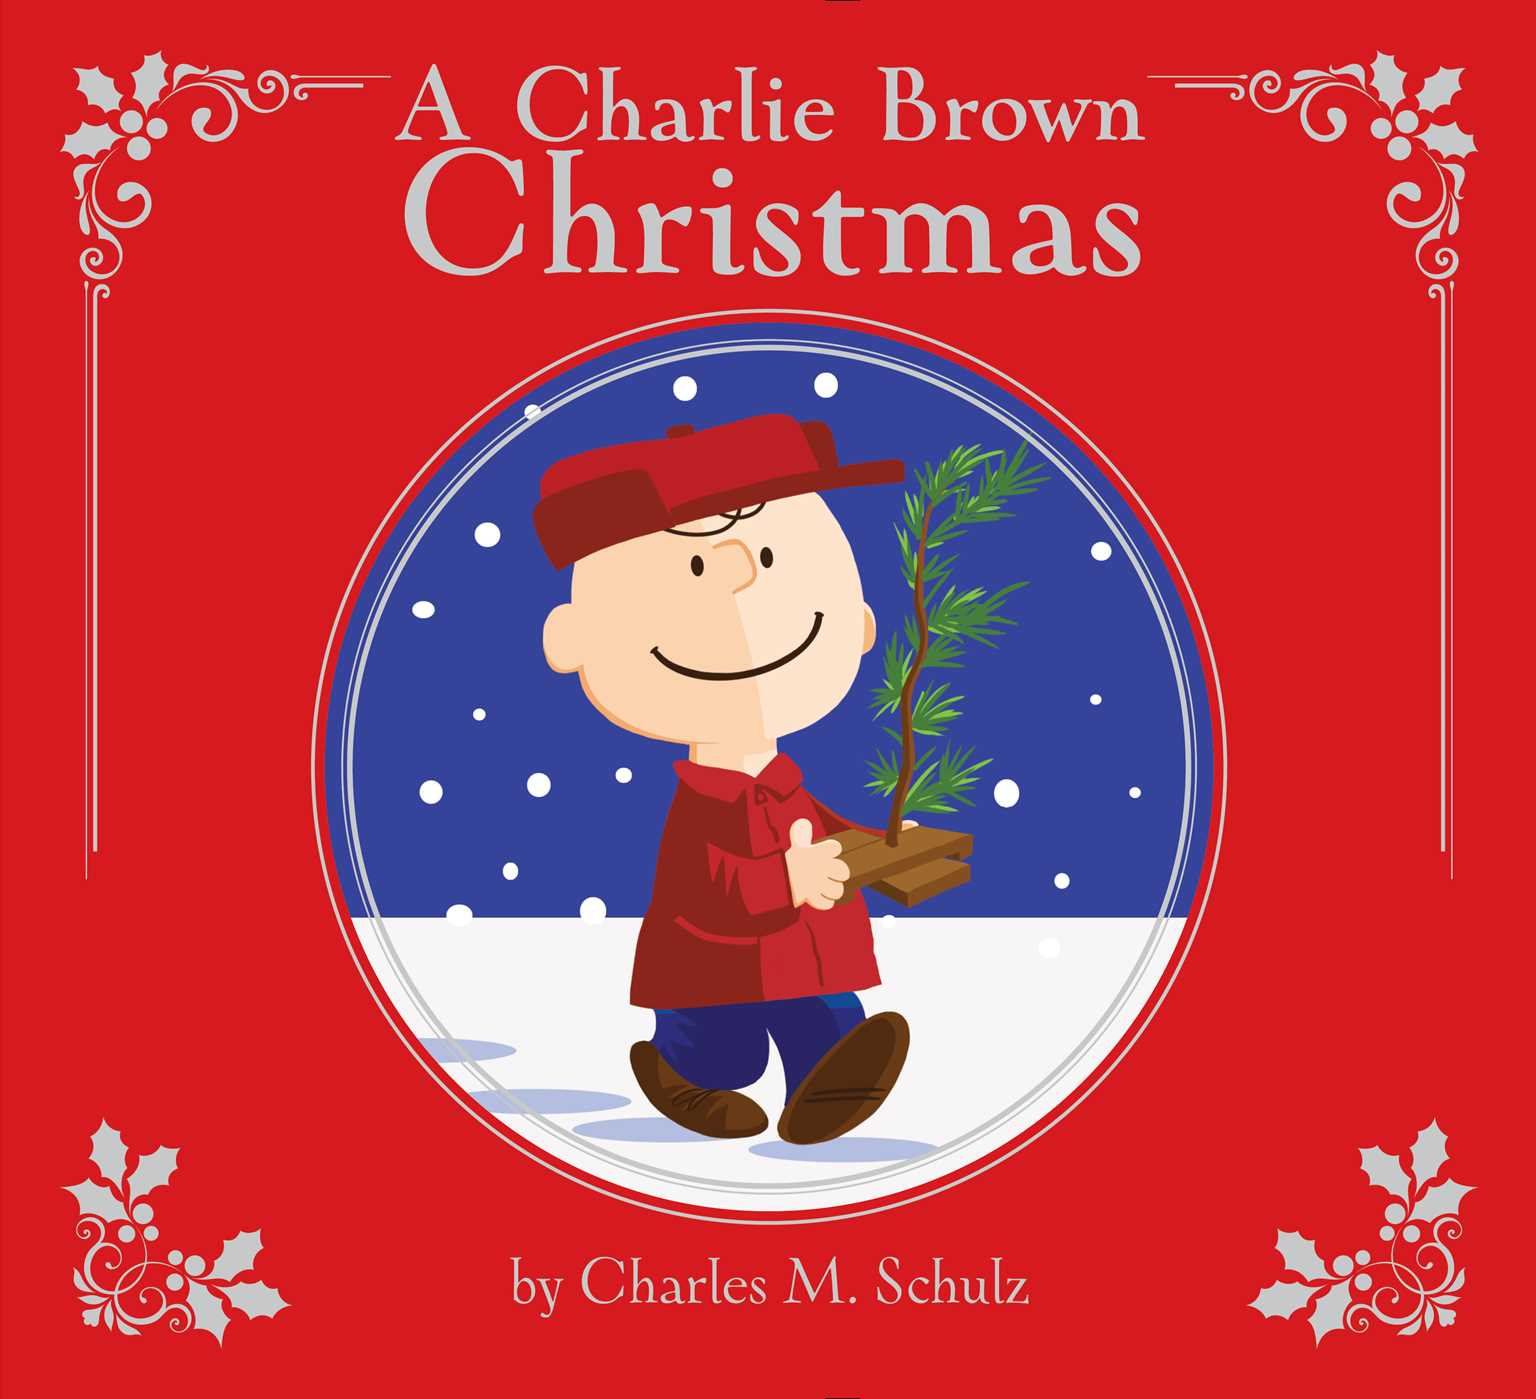 Image result for charlie brown christmas by charles m. schulz